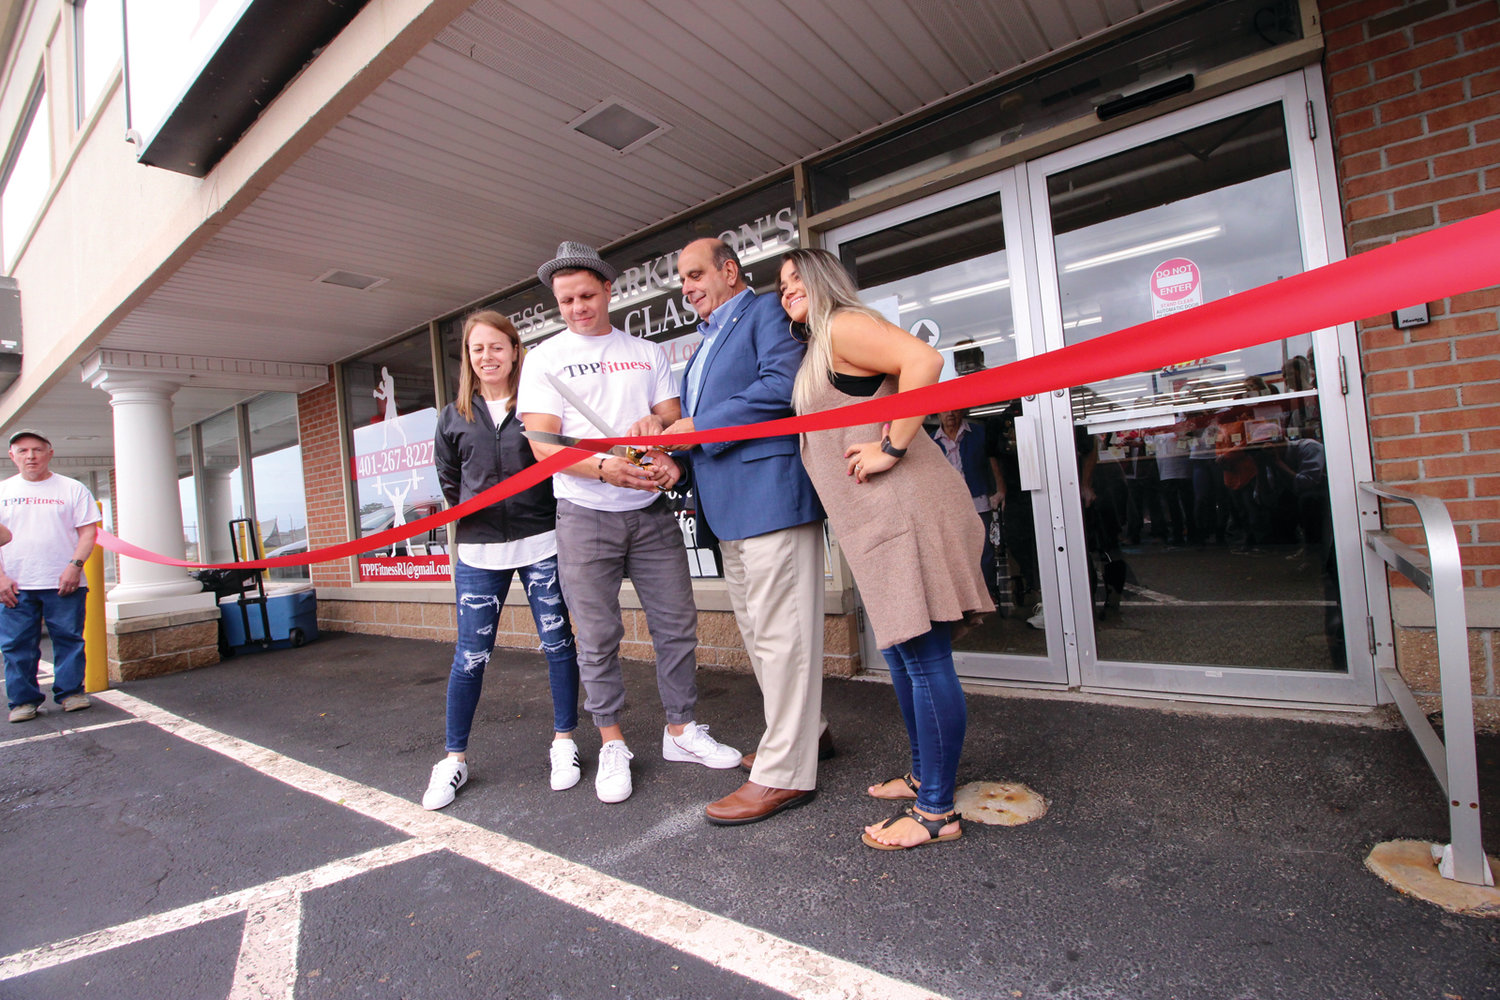 OFFICIAL WELCOME: Joined by TPP Fitness founder Rich Gingras, coach and trainer Paula Silva (left) and assistant manager Larissa Jungermann, Mayor Joseph Solomon snipped the ribbon to open the gym at Airport Plaza.